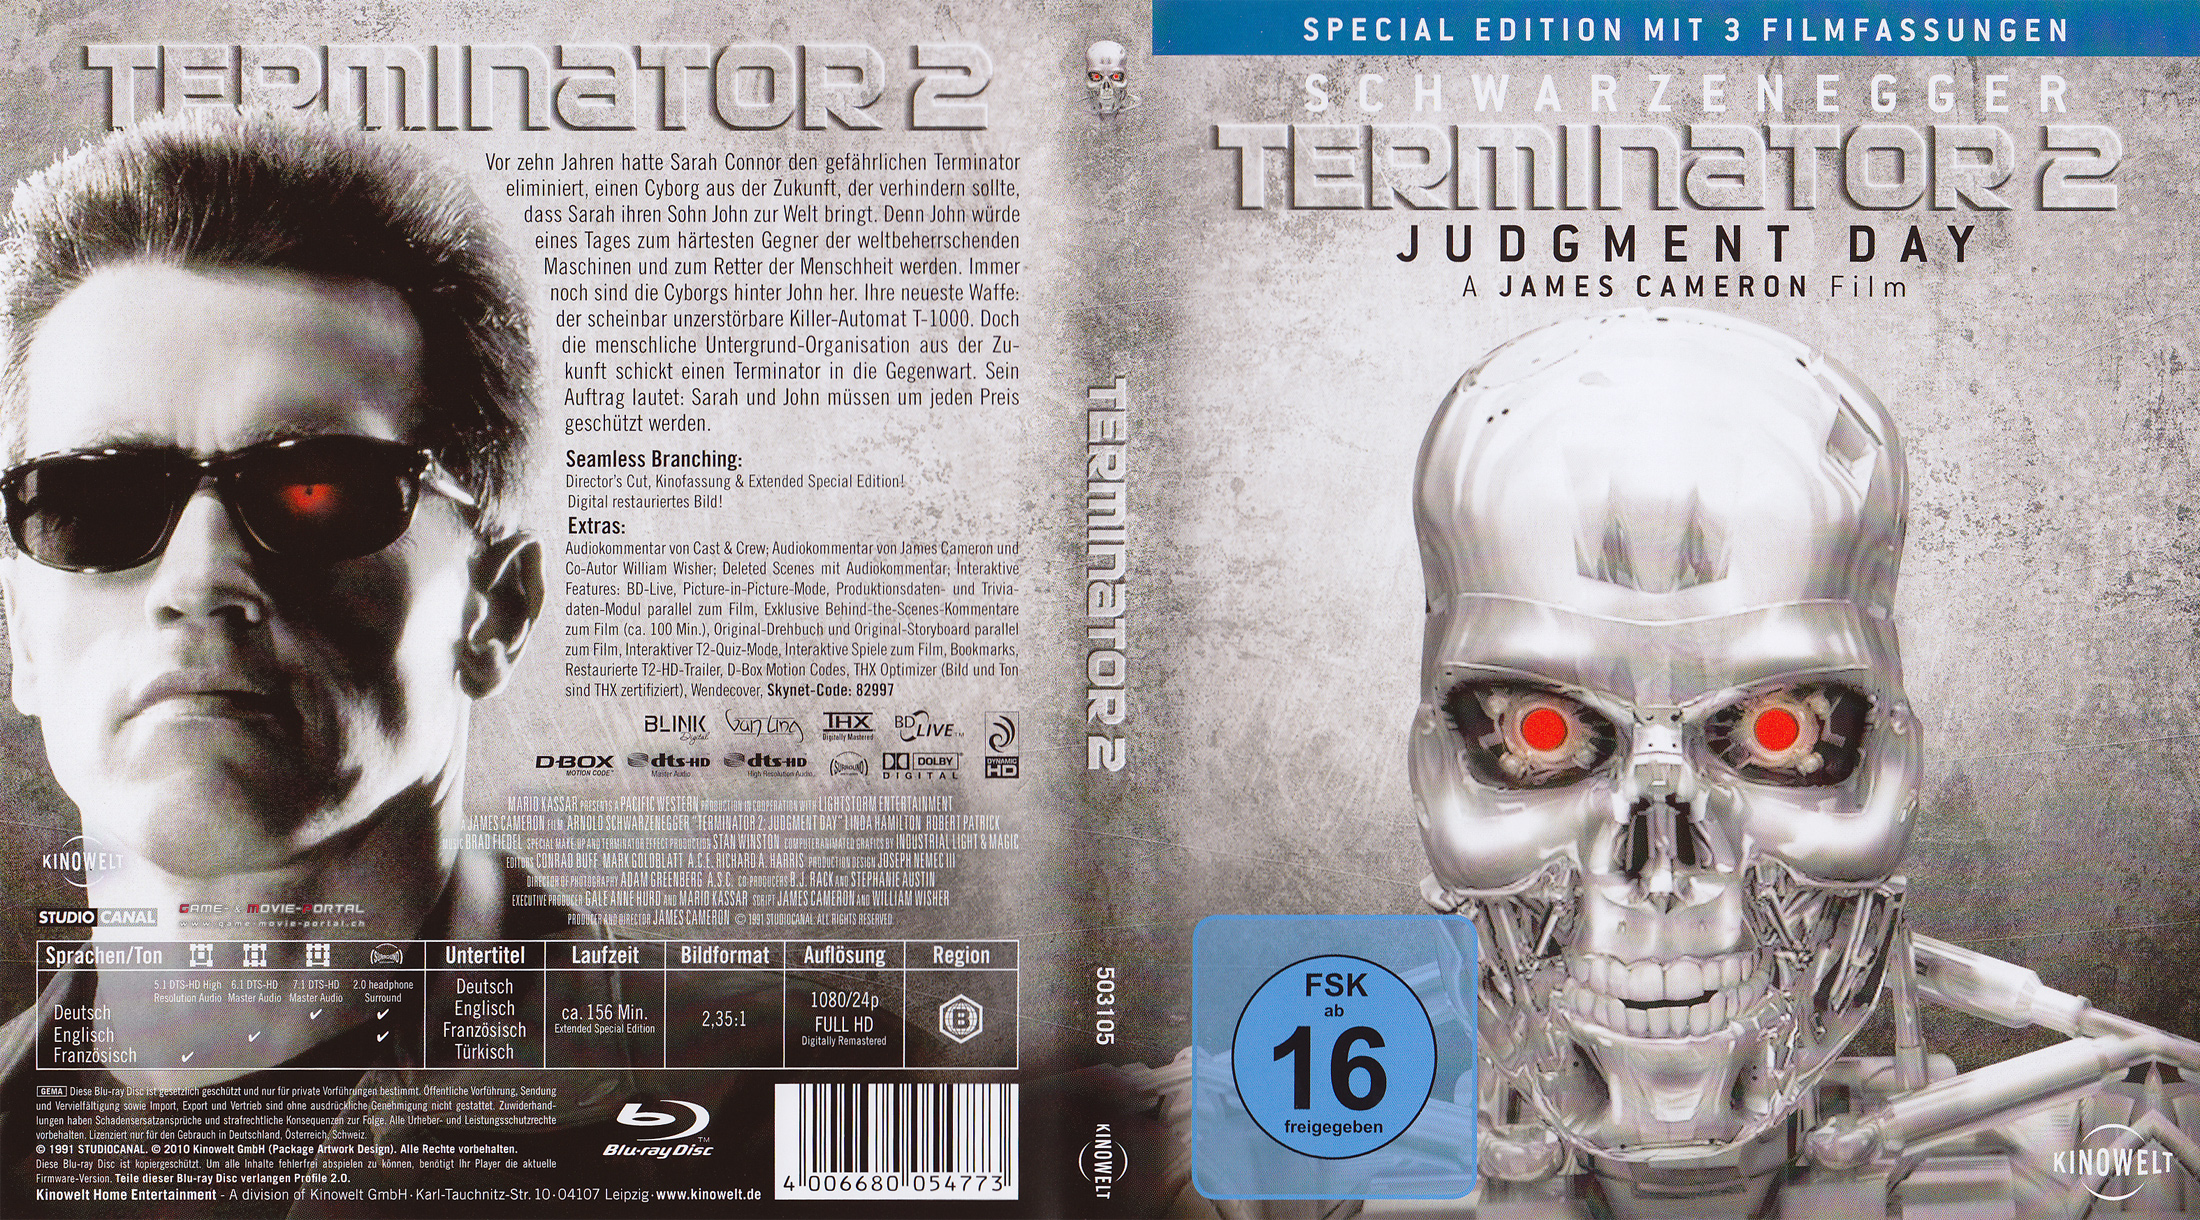 gmp terminator 2 tag der abrechnung cover packshot poster in high quality hochaufl sung. Black Bedroom Furniture Sets. Home Design Ideas